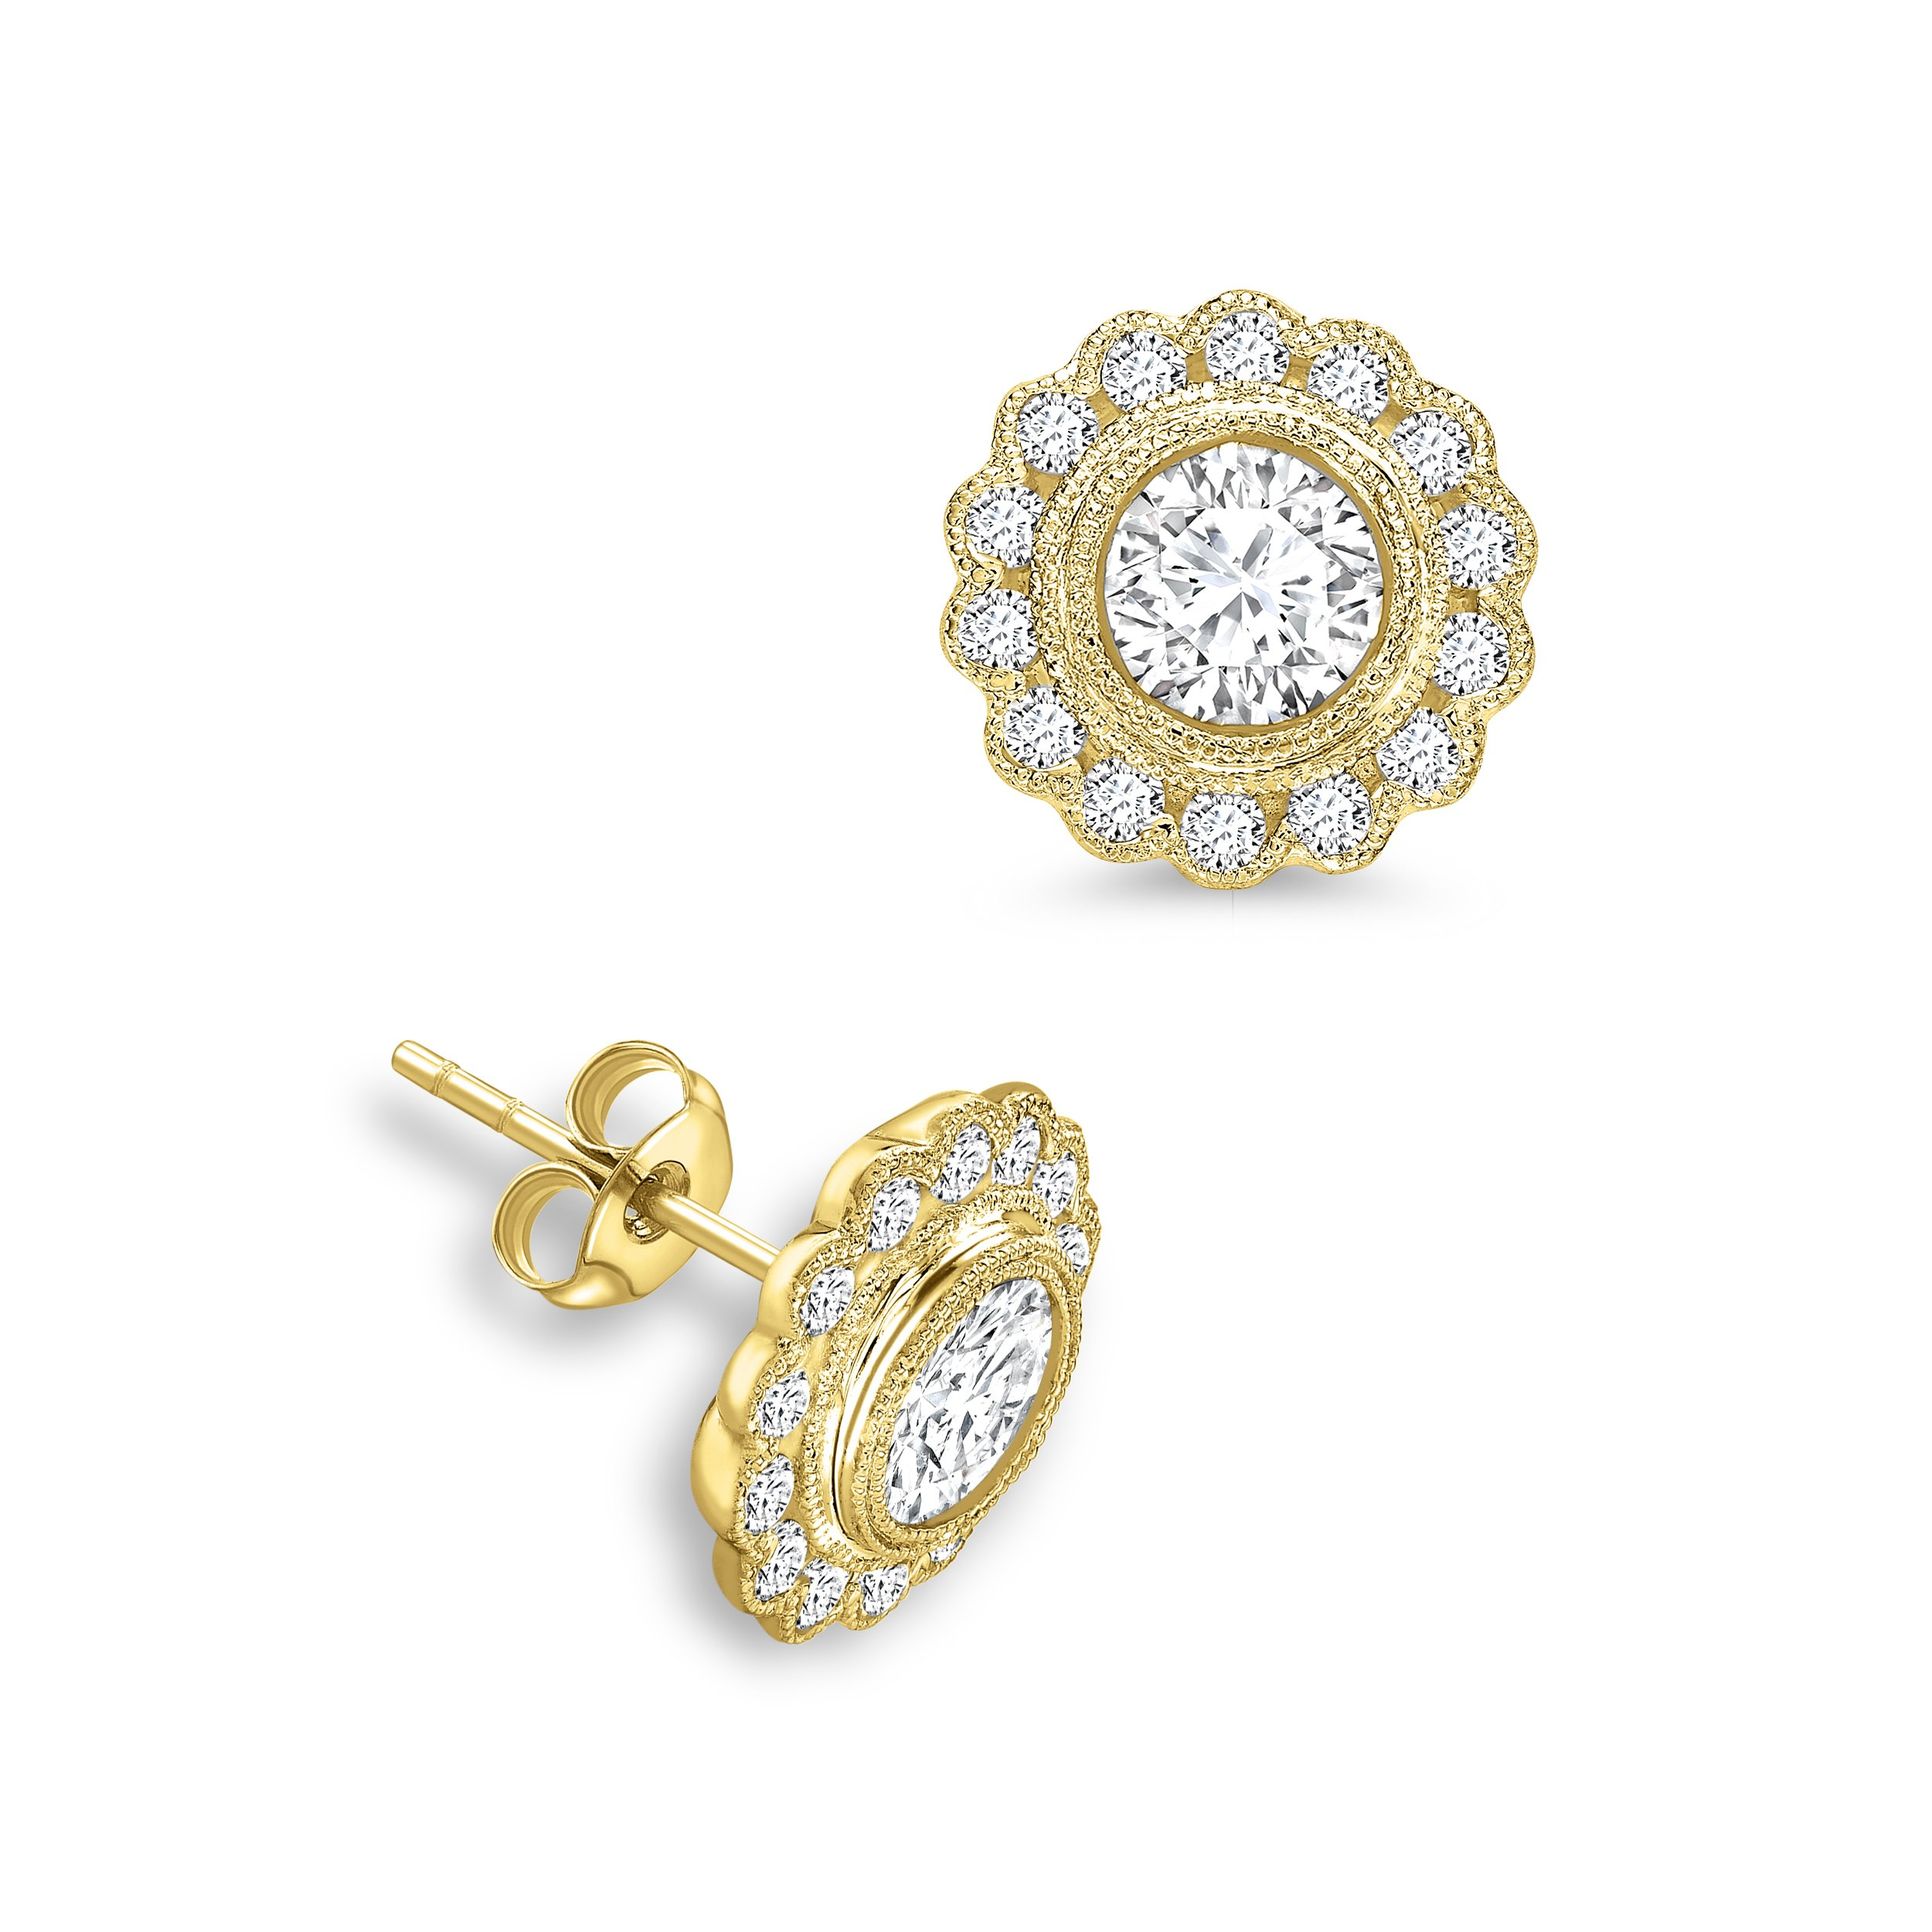 2451d1871 Round Shape Flower Style Designer Diamond Earrings Available in White,  Yellow, Rose Gold and